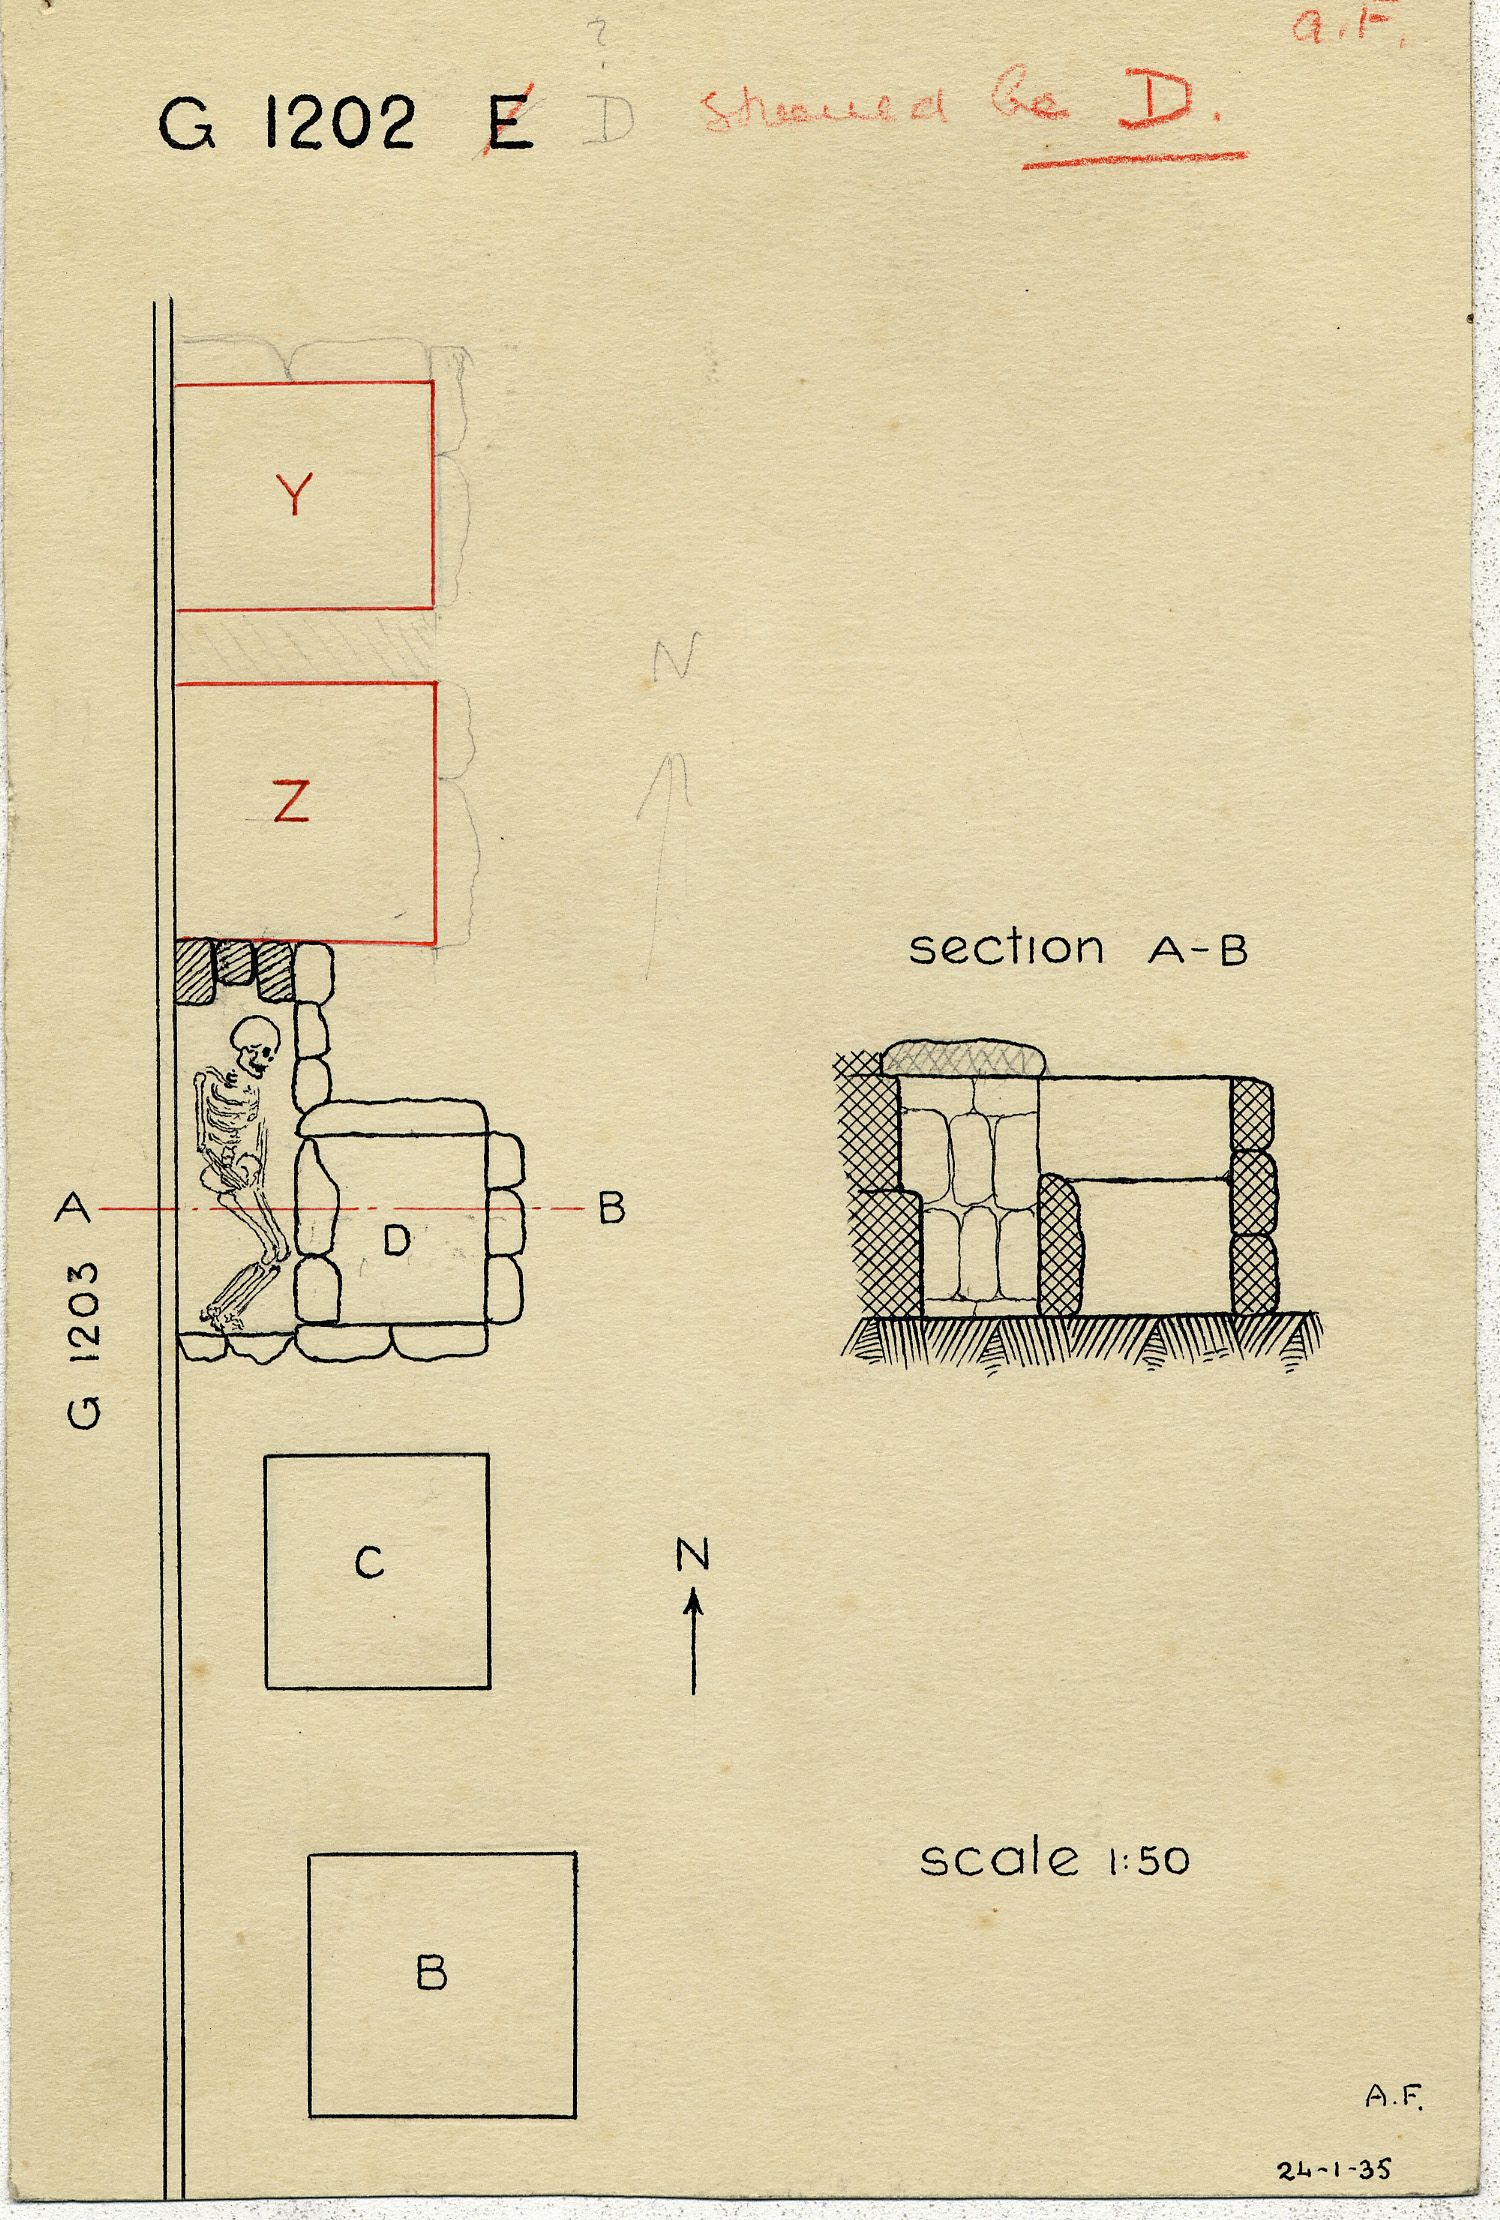 Maps and plans: G 1202, Shaft D